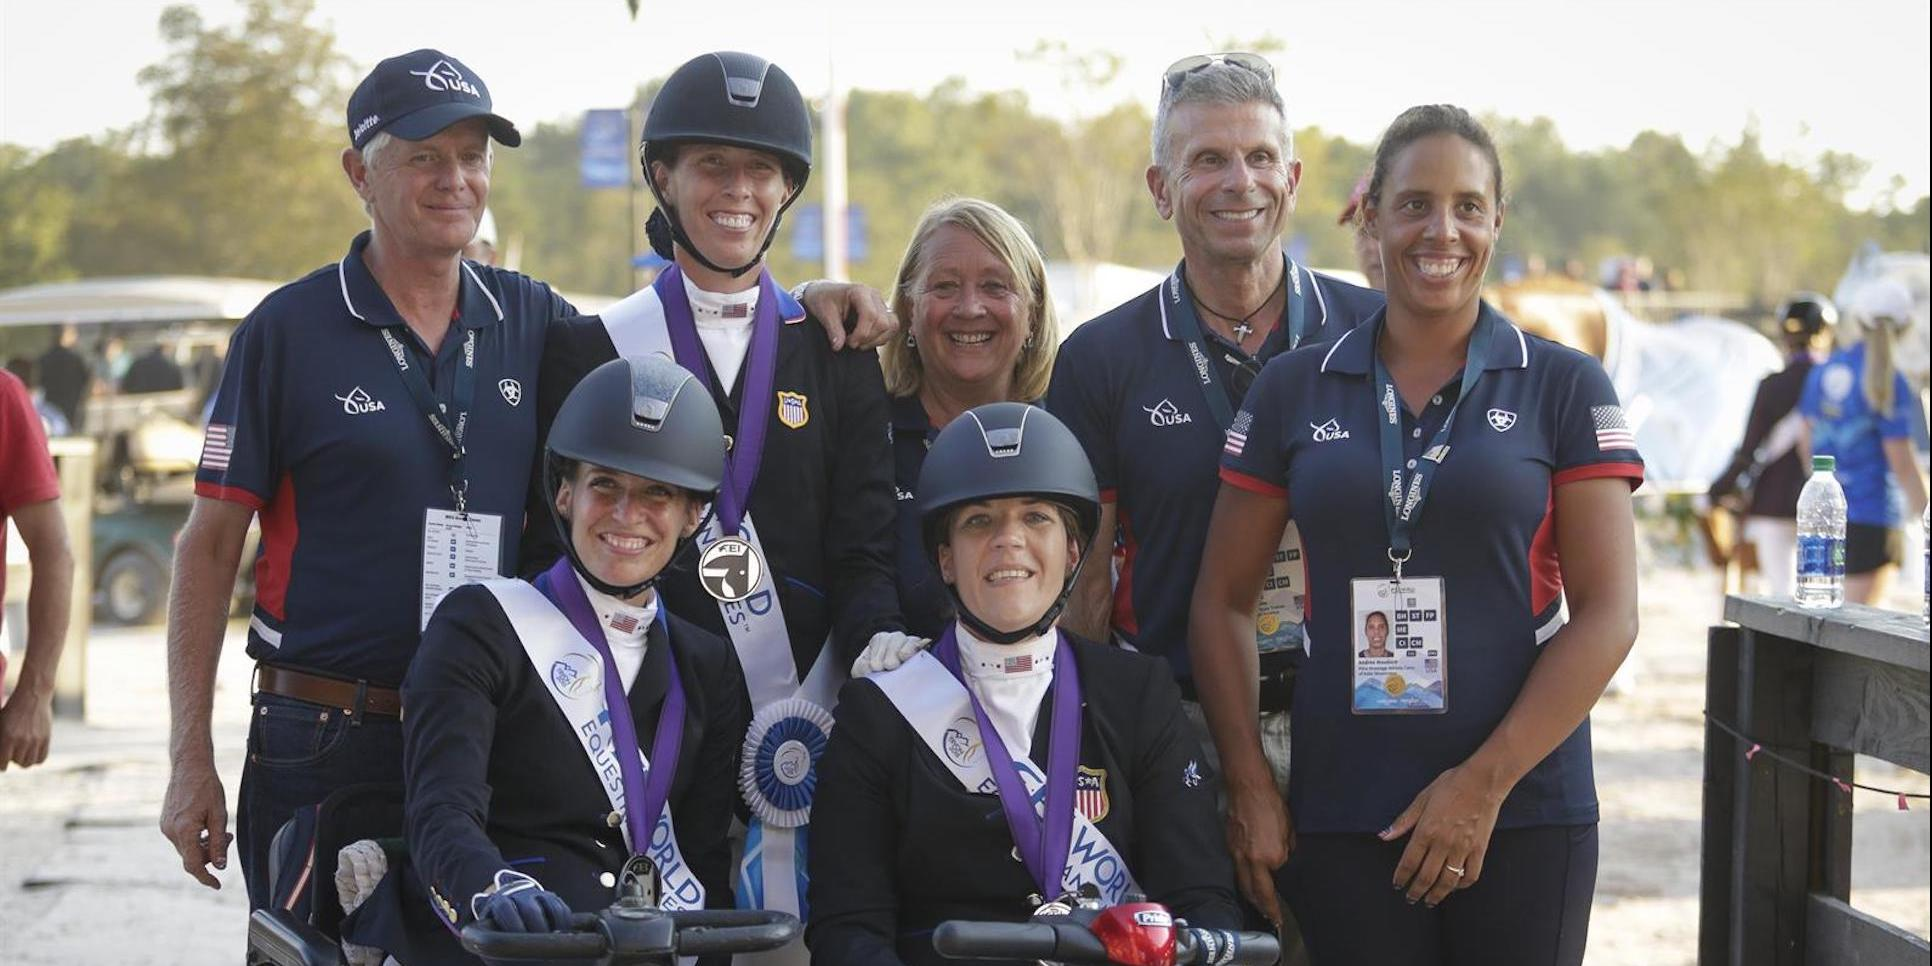 para-group-photojpg_large.jpg